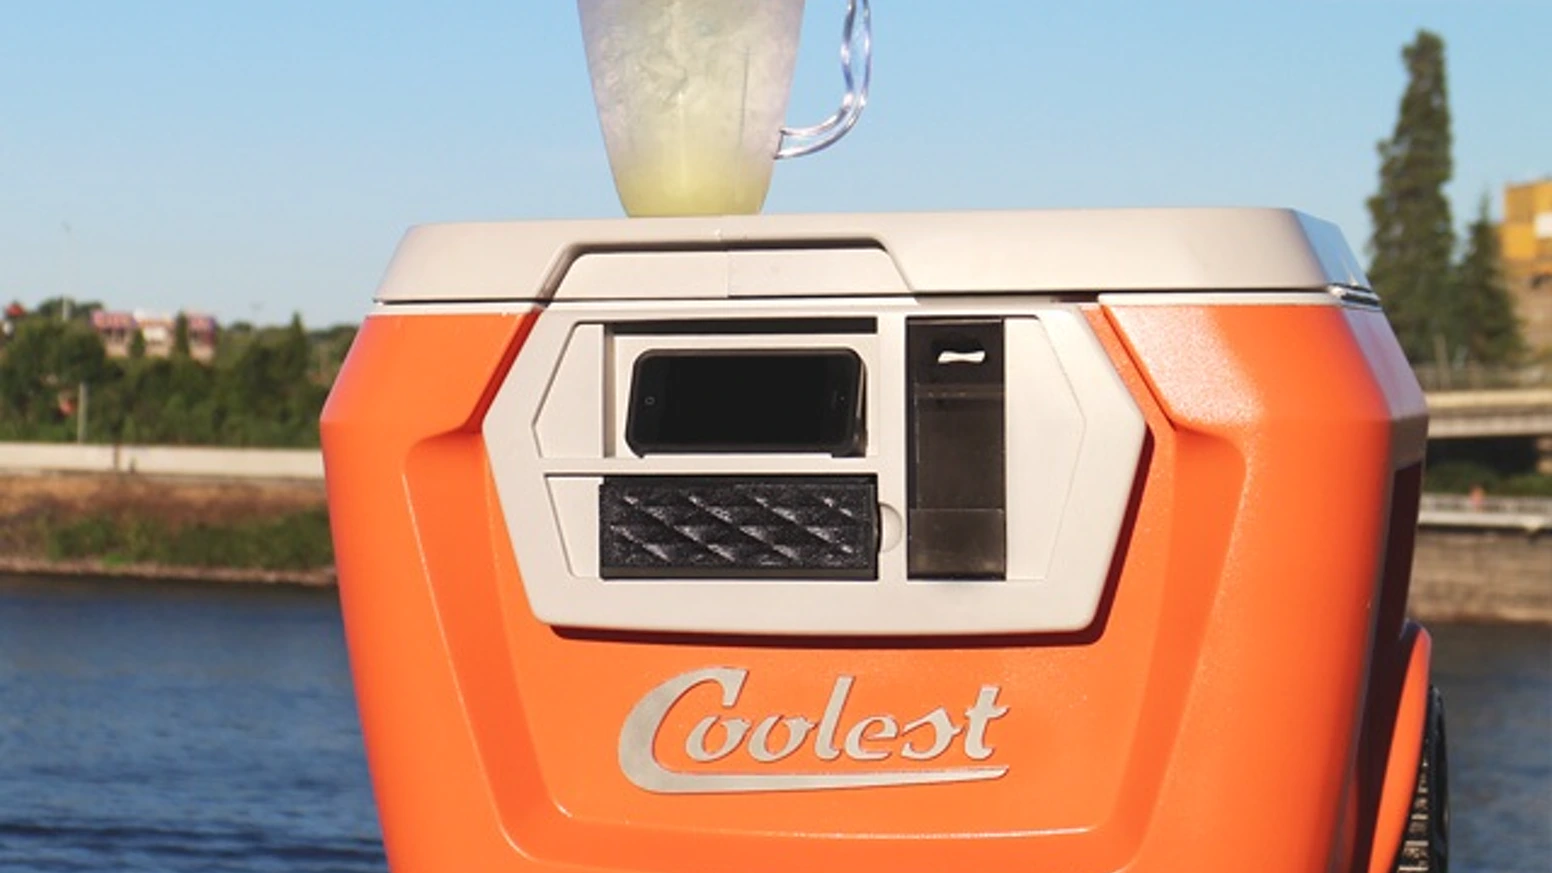 Coolest Cooler isn't really one of the most successful kickstarter campaigns.